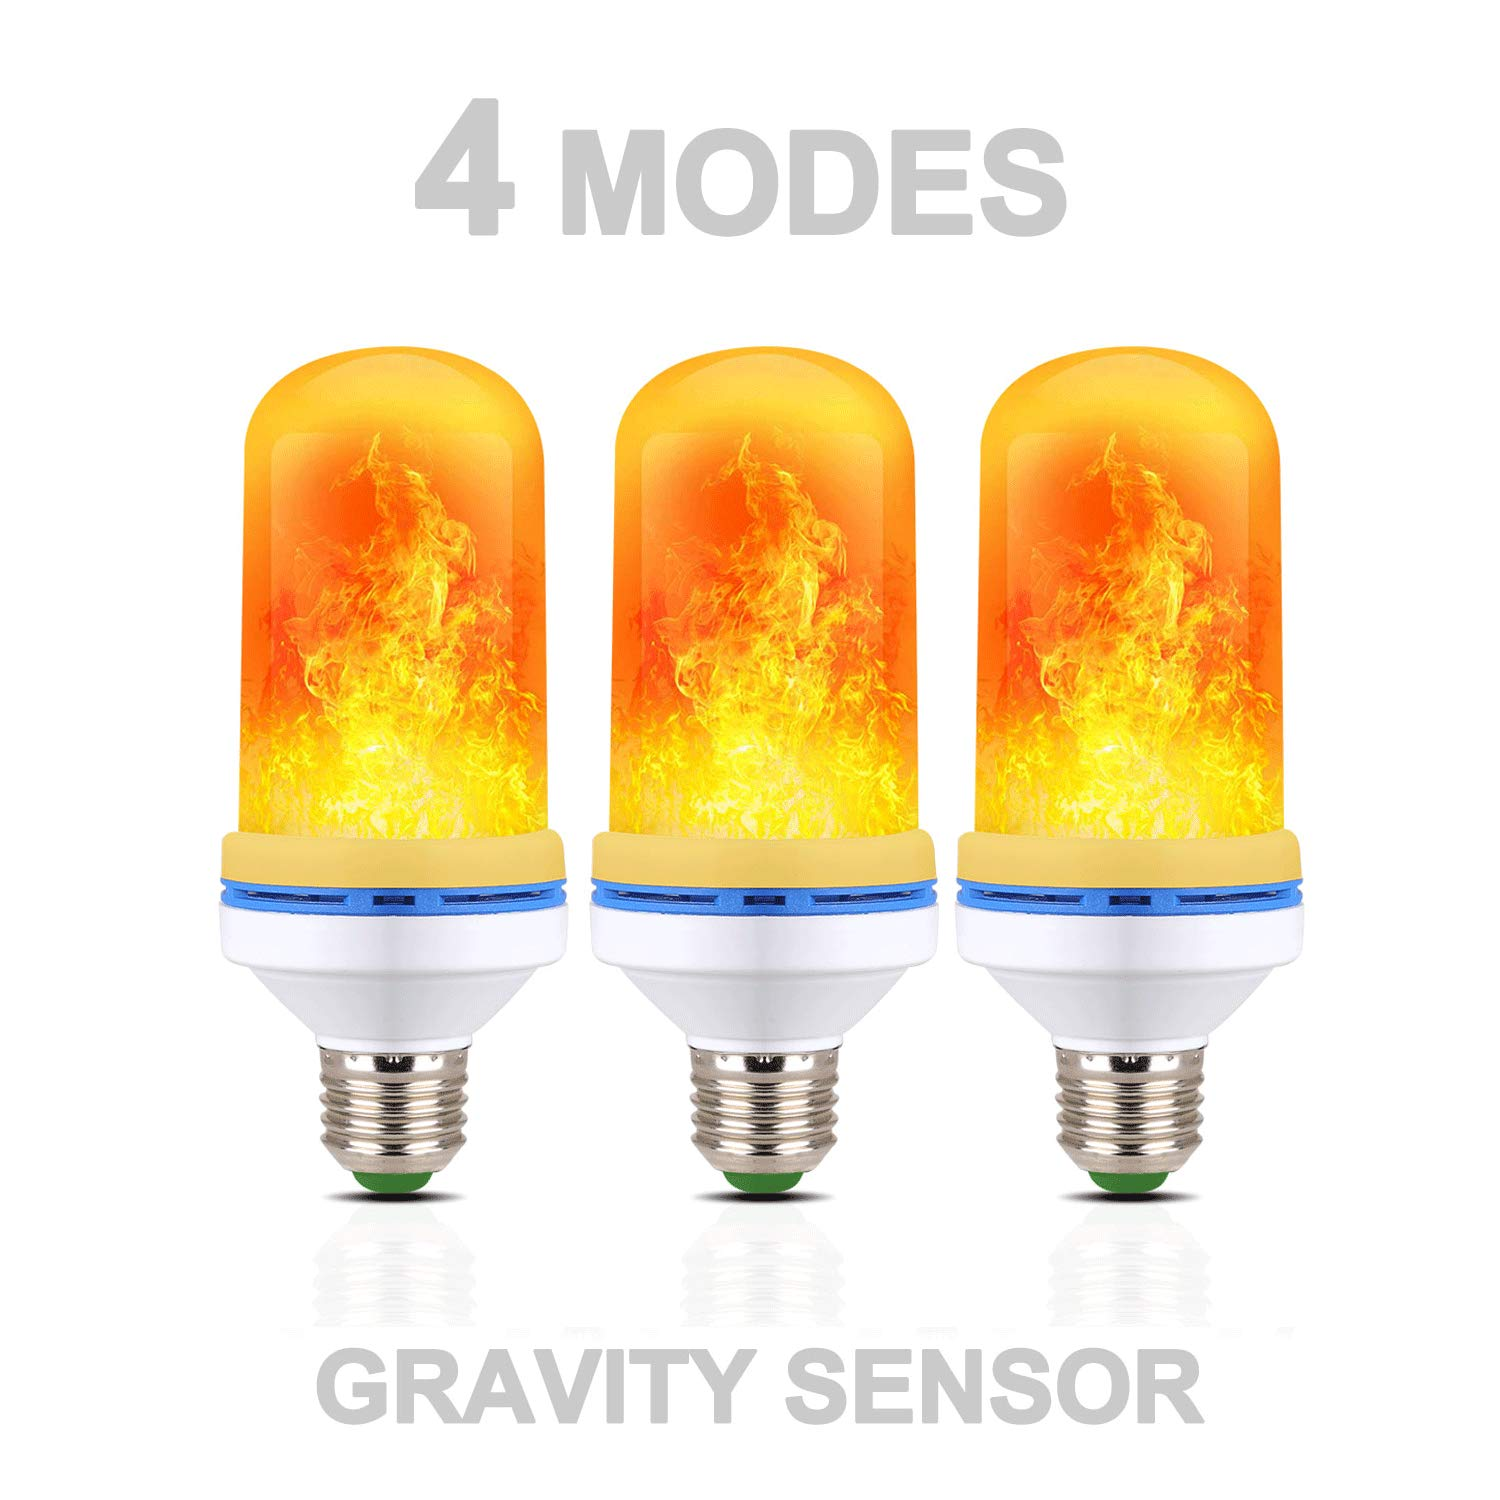 Breathing Decorative Light for Home Hotel Bar Wedding Party Decoration 3 Pack Constant Light Gravity Sensor Fire Flickering E26 Bulbs 4 Modes Emulation LED Fire Flame Flicker Effect Light Bulb